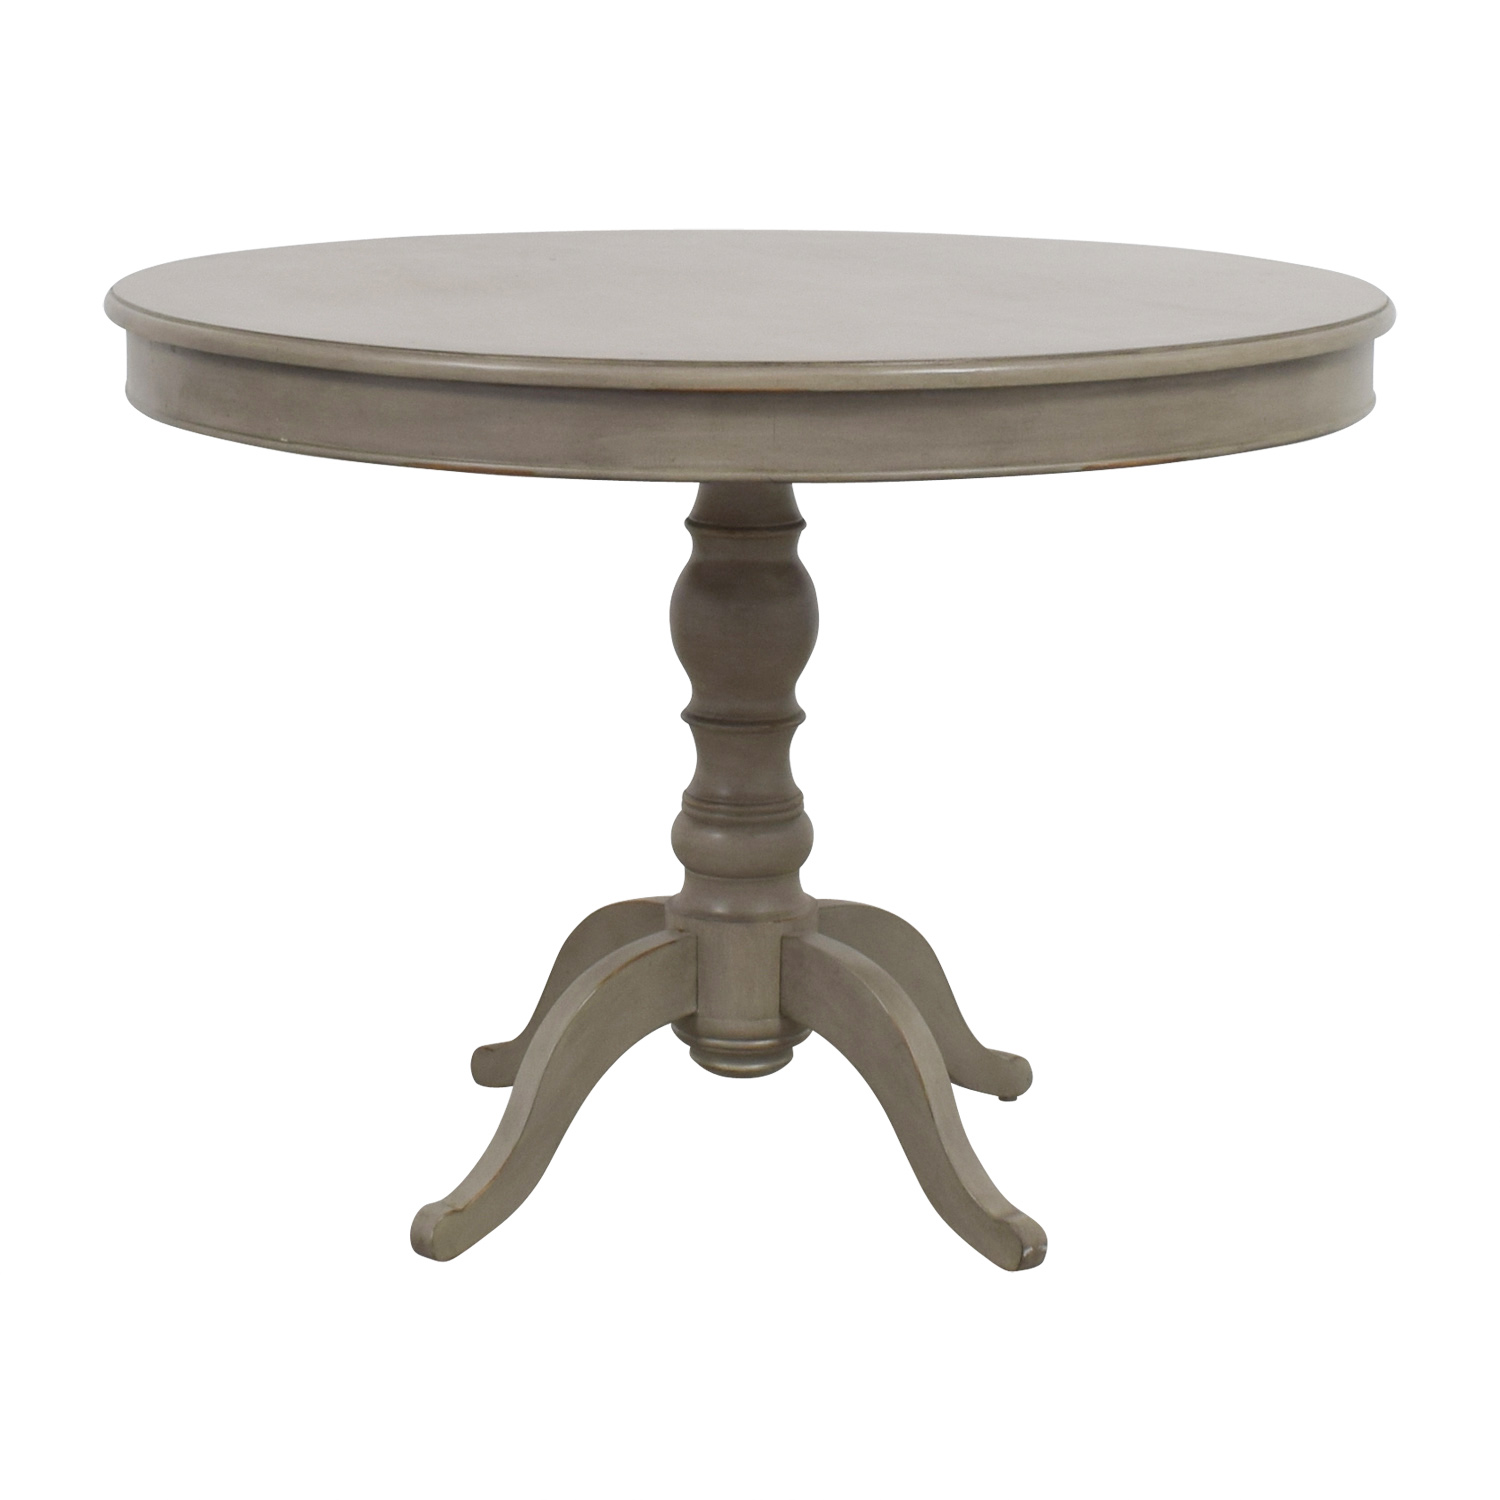 Ballard Ballard Design Round Gray Table for sale